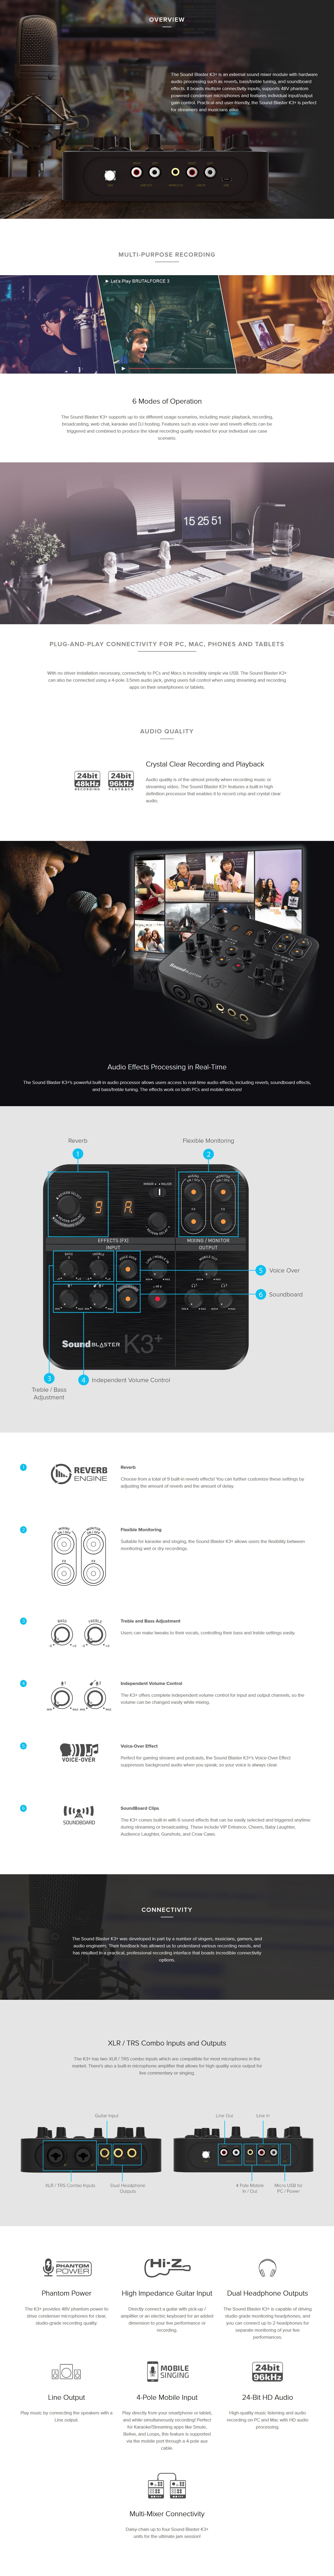 A large marketing image providing additional information about the product Creative SoundBlaster K3+ XLR Audio Mixer - Additional alt info not provided